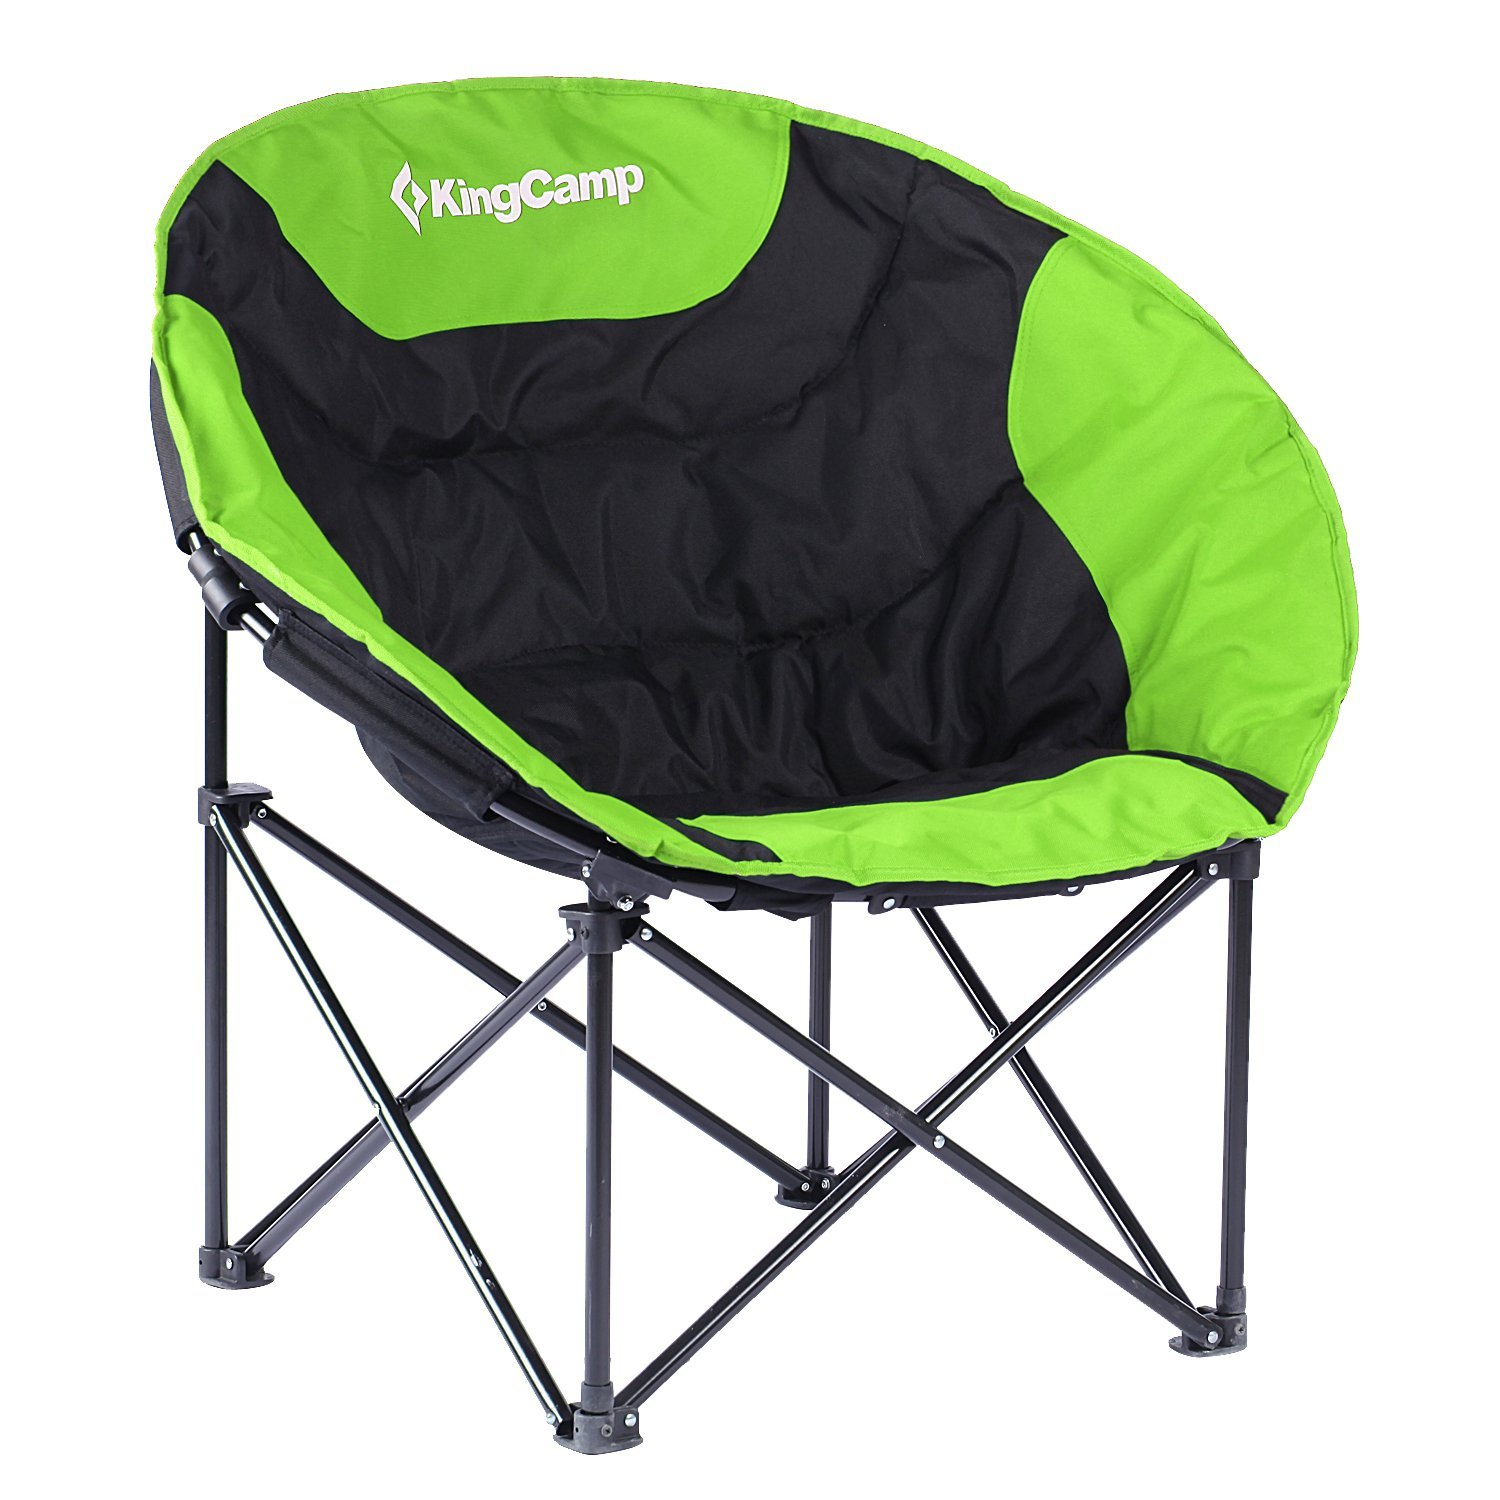 KingCamp Moon Leisure Lightweight Portable Stable Folding...